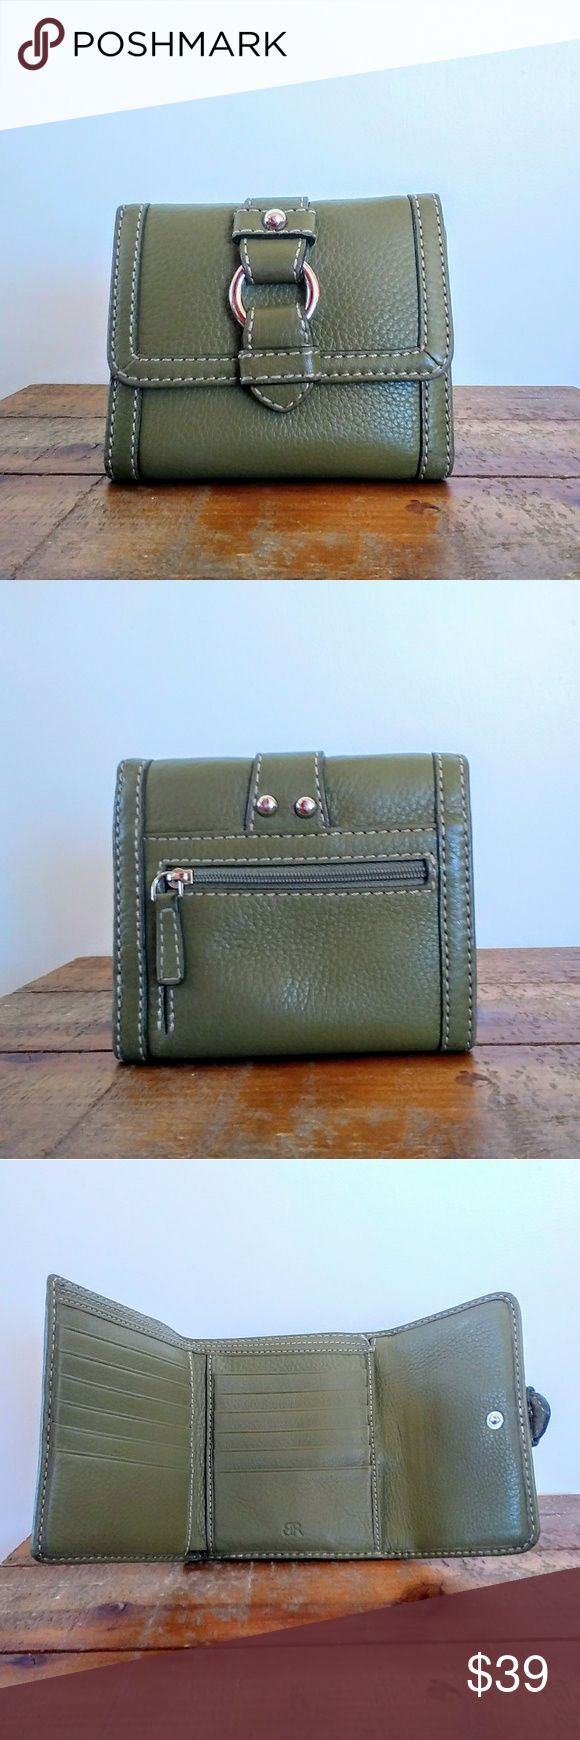 "Banana Republic Leather Buckle Wallet Cute wallet from Banana Republic, made from green leather with silvertone hardware and signature satin lining. Snap closure, 1 zip pocket on the back, and 2 cash slots, 2 slide pockets and 12 card slots inside. Like new condition. Measures 5.5""×4.5"" closed and 12"" long when open. Banana Republic Bags Wallets"